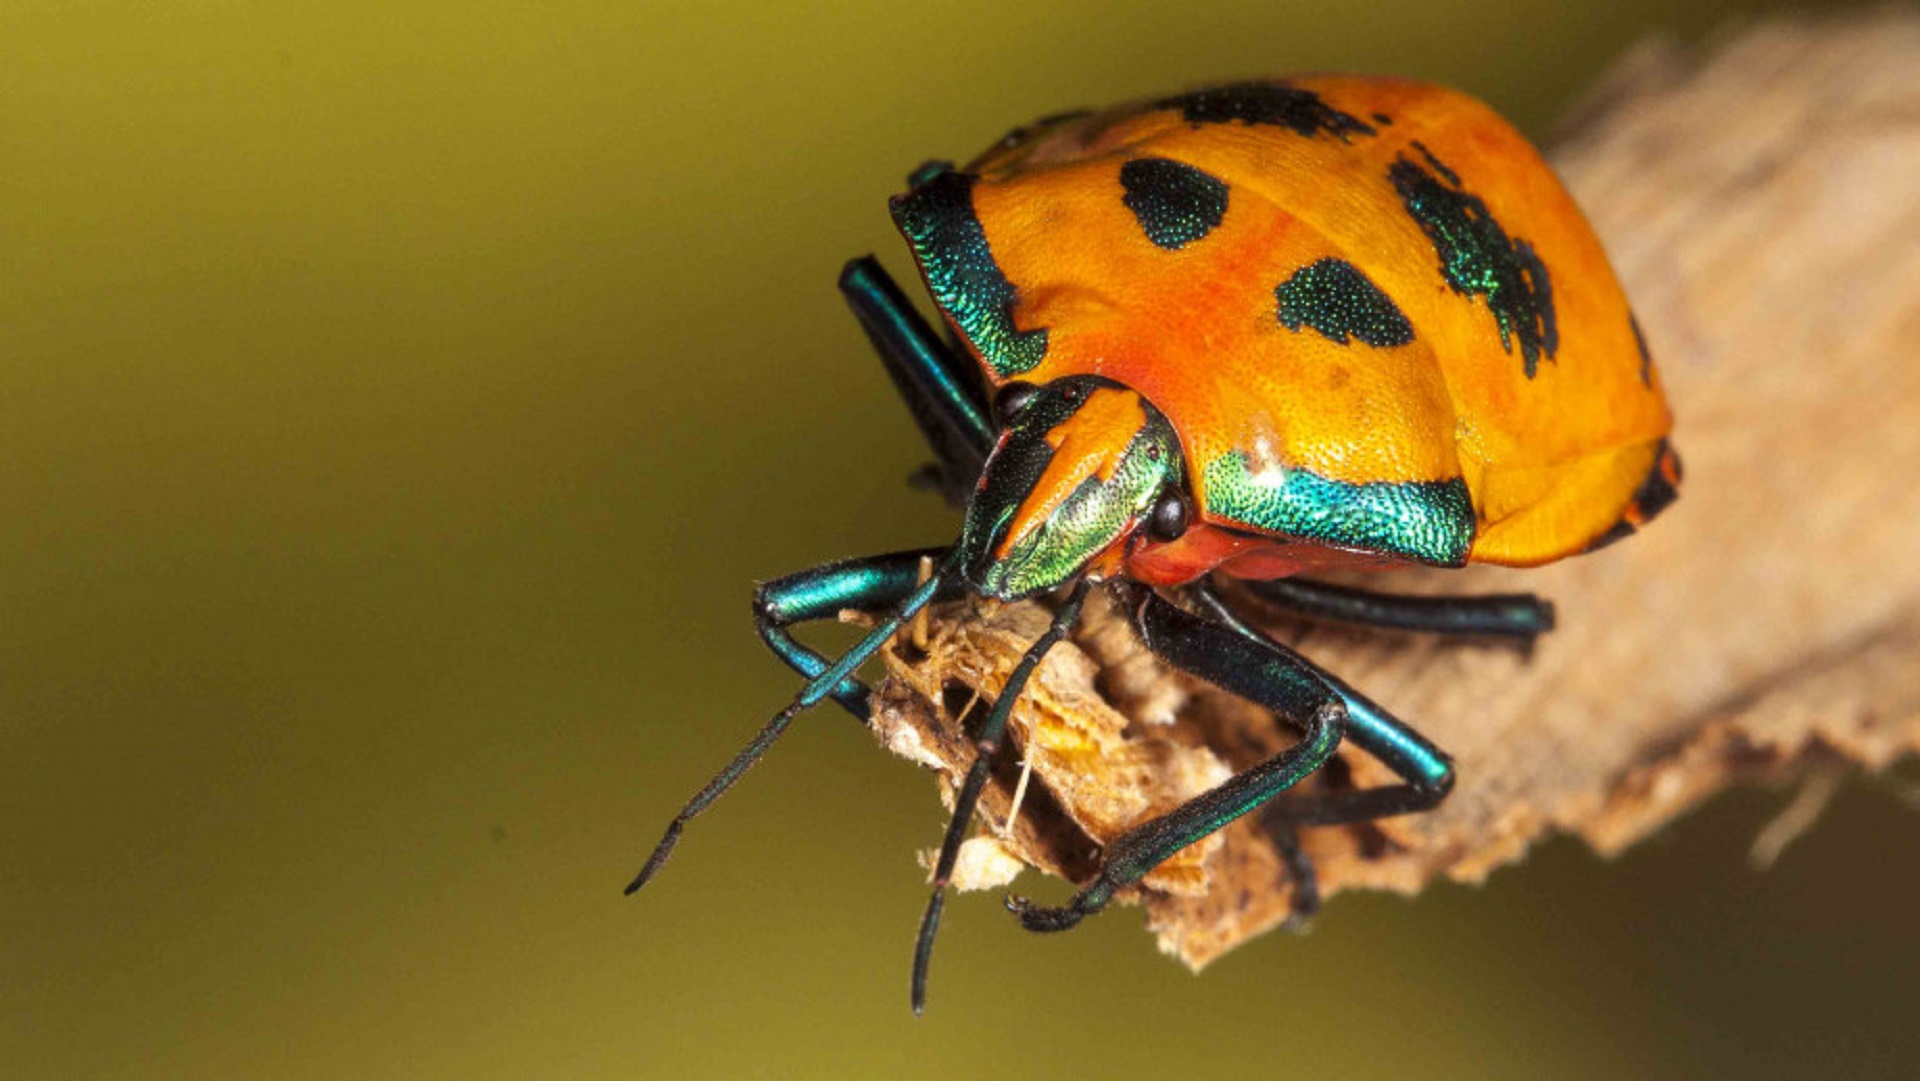 shield bugs_bugs_insects